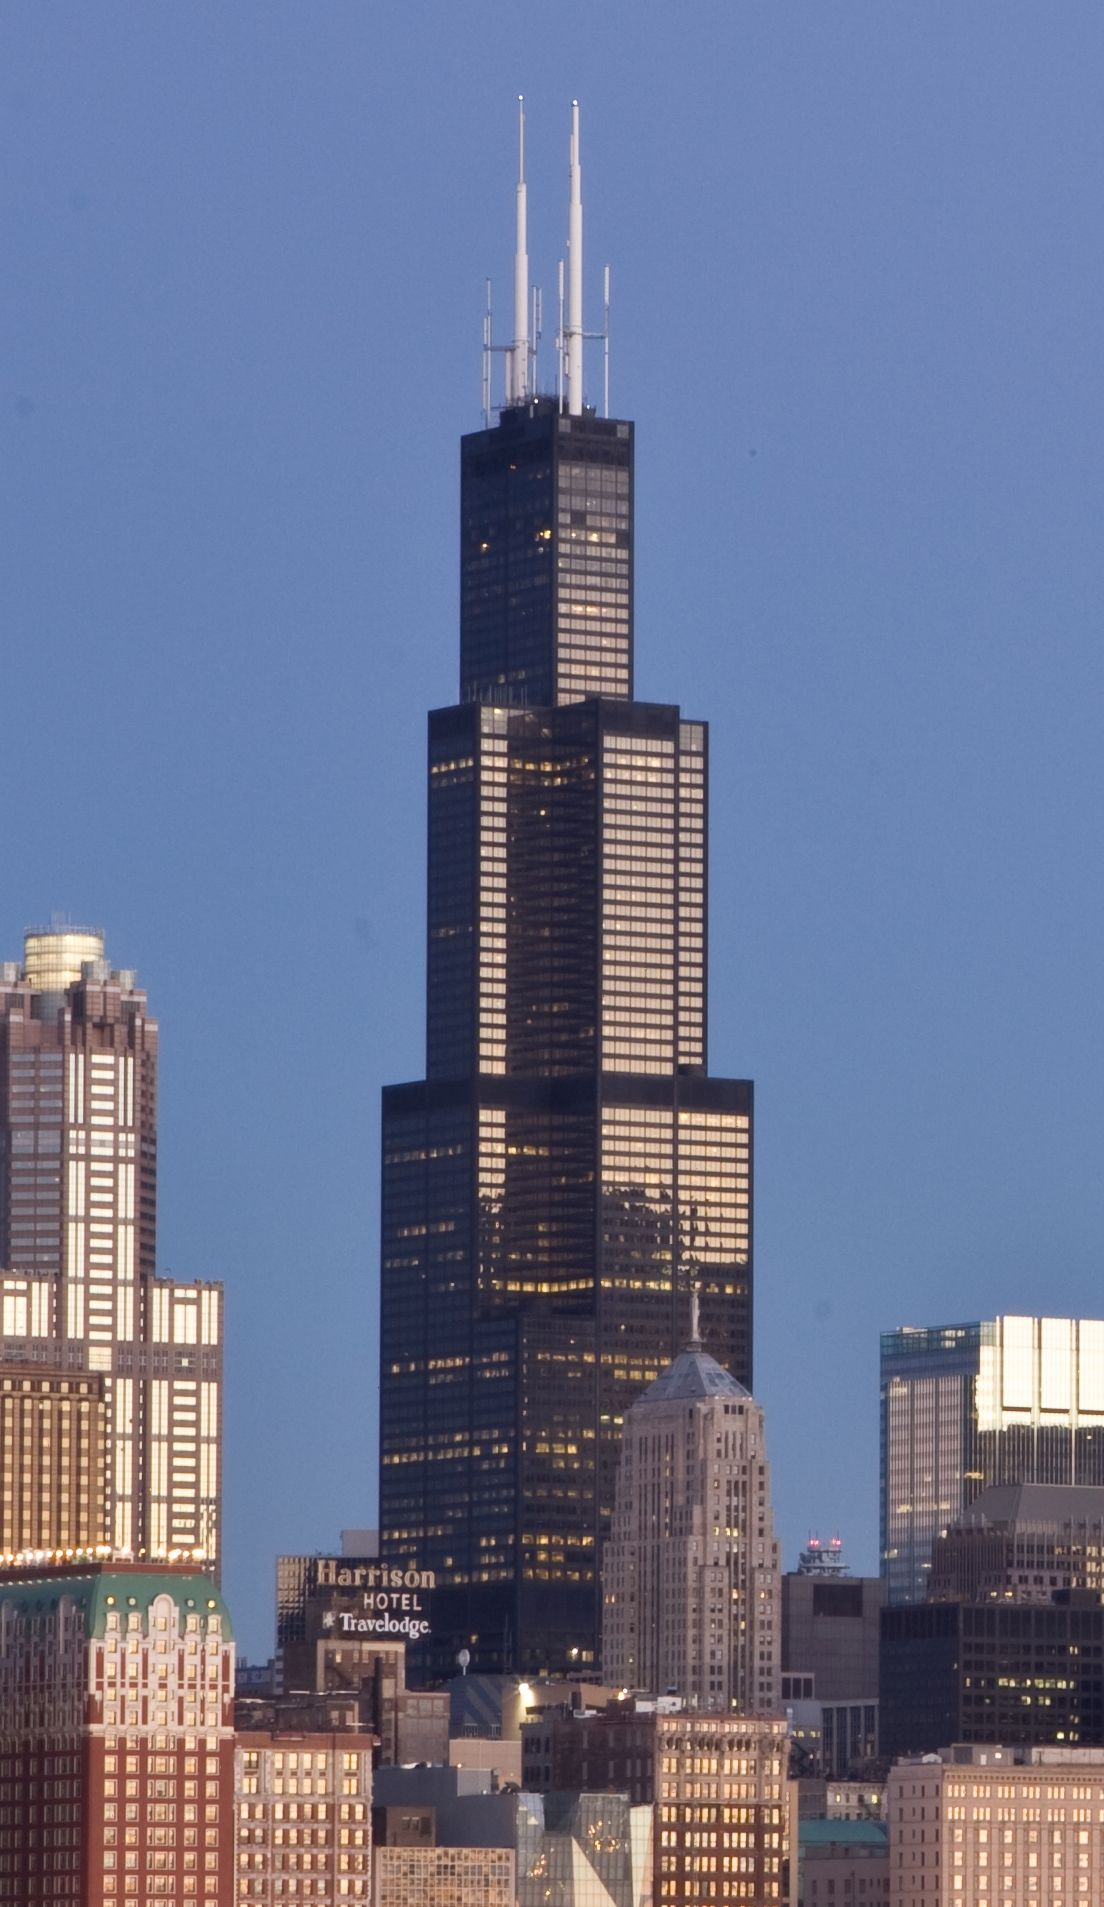 Image Detail For Http Rushnews Files Wordpress Com 2010 11 Willis Tower Jpg Willis Tower Sears Tower Chicago Sears Tower